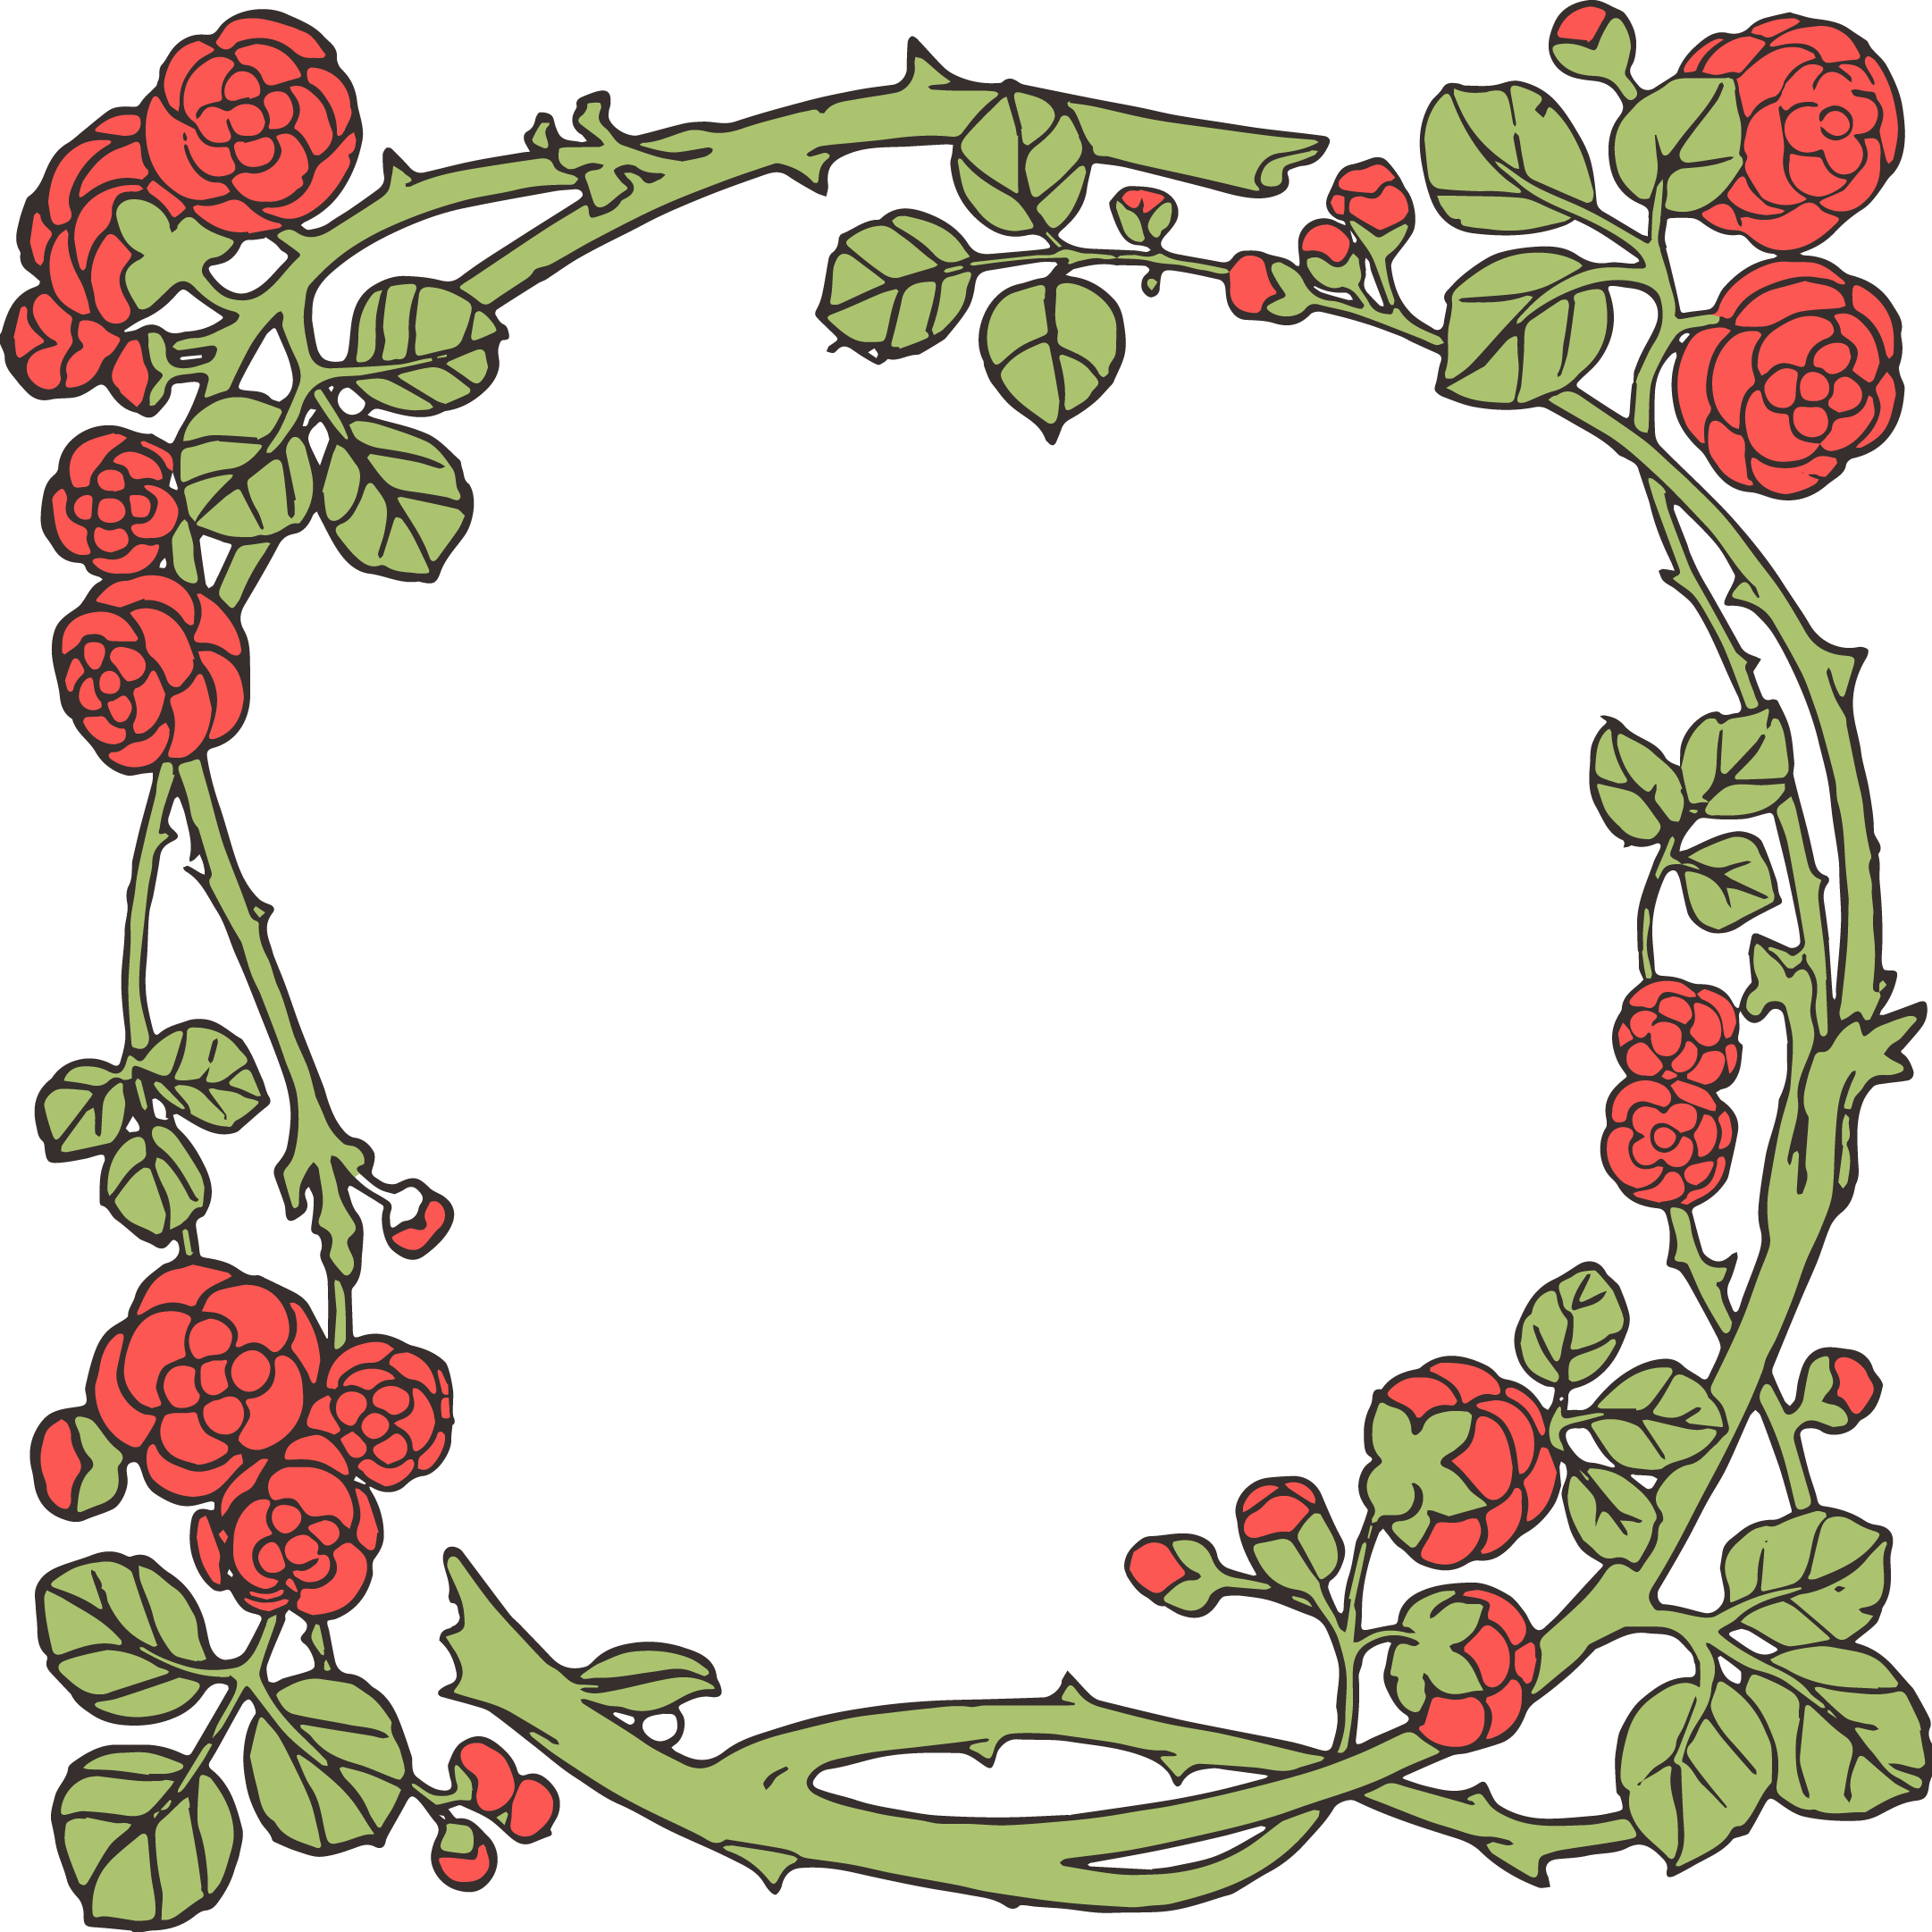 Vector pict floral. Free clipart at getdrawings